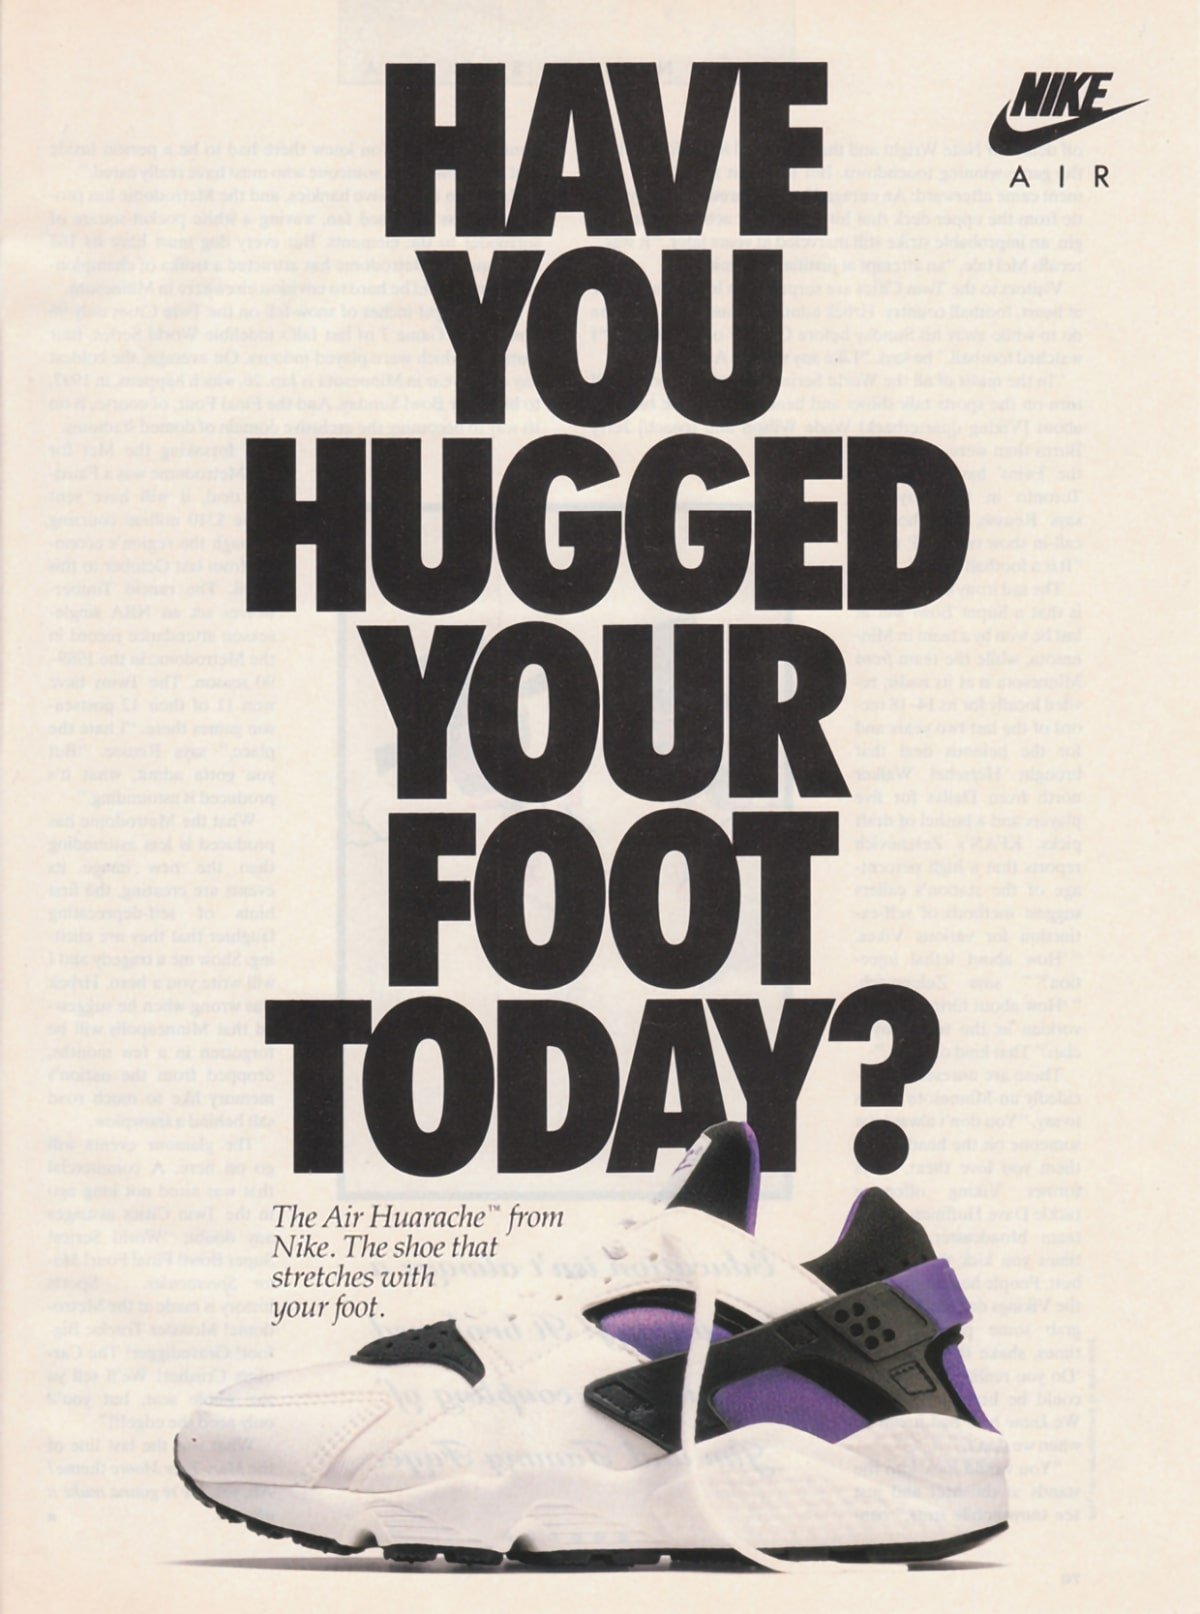 Nike Air Huarache - Have You Hugged Your Foot Today?'